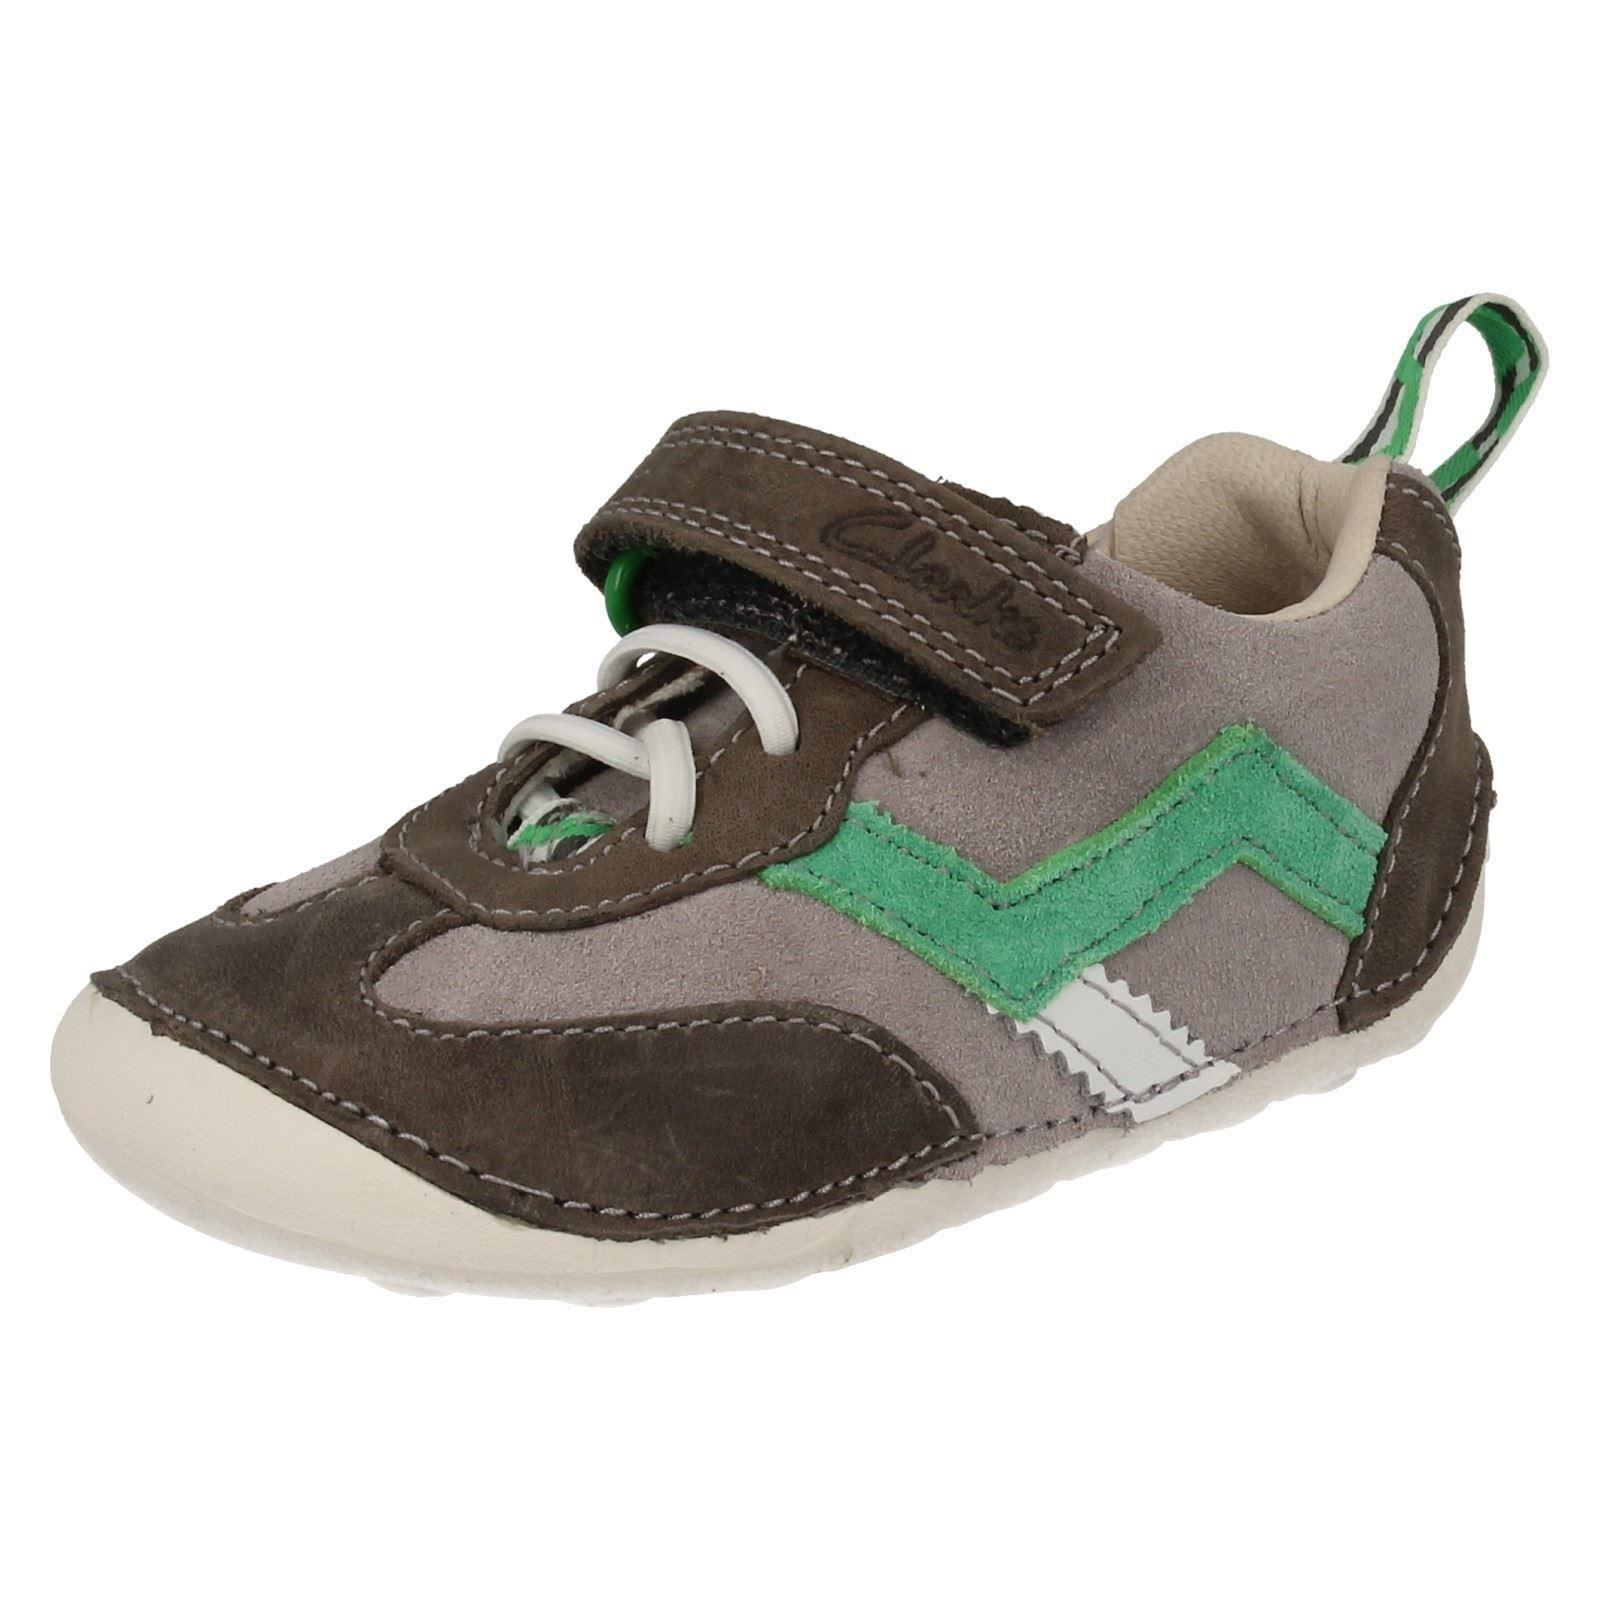 Clarks Boys Casual Trainers - Cruiser Play